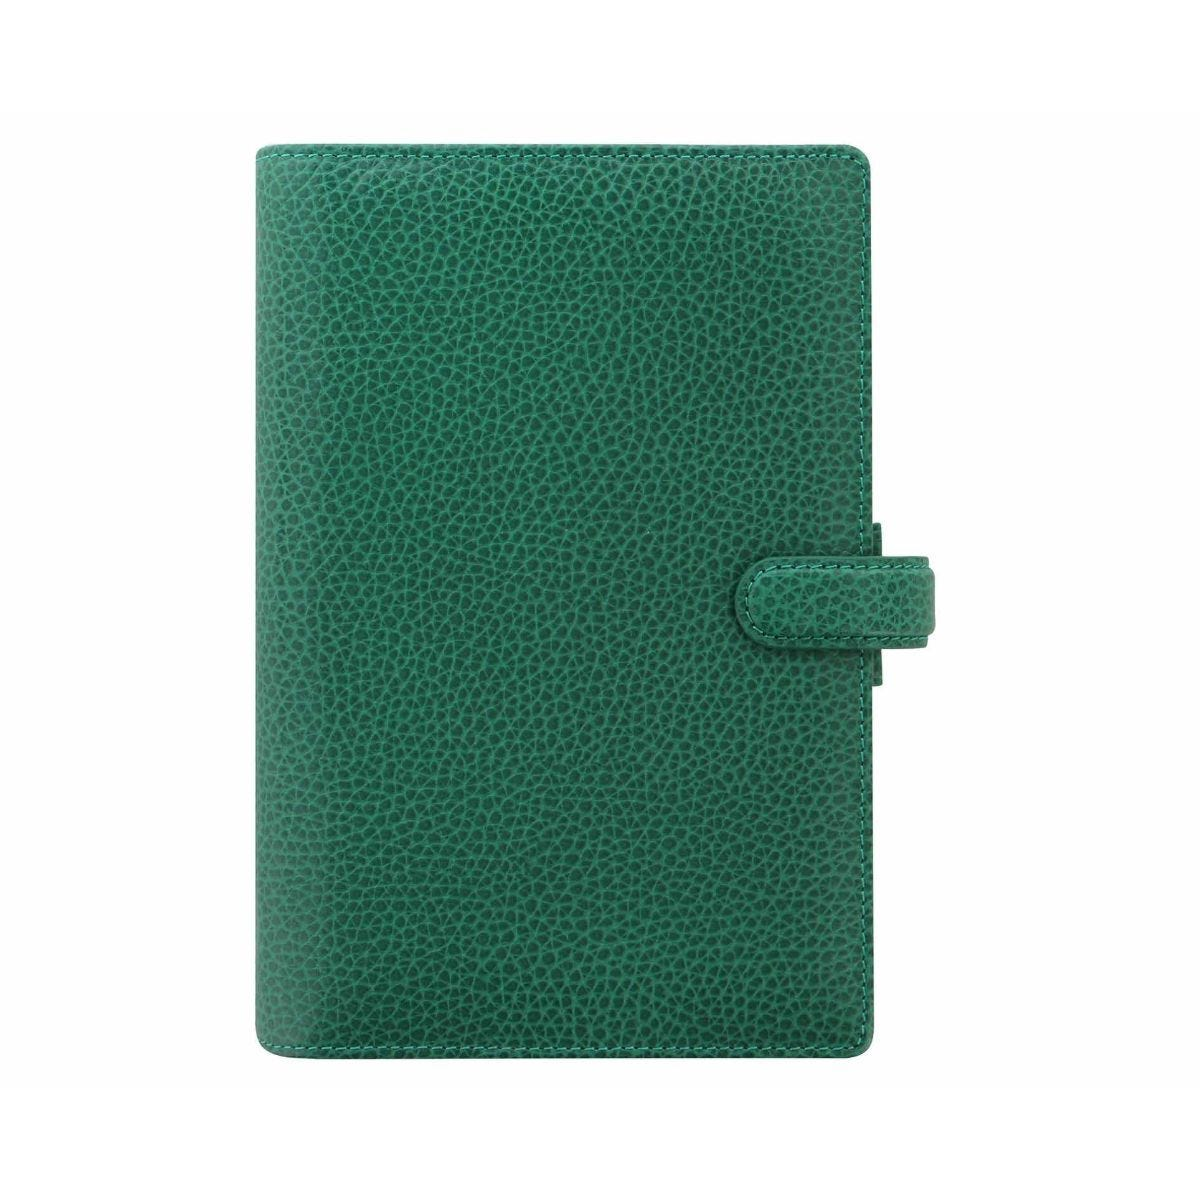 Filofax Finsbury Organiser Personal Forest Green